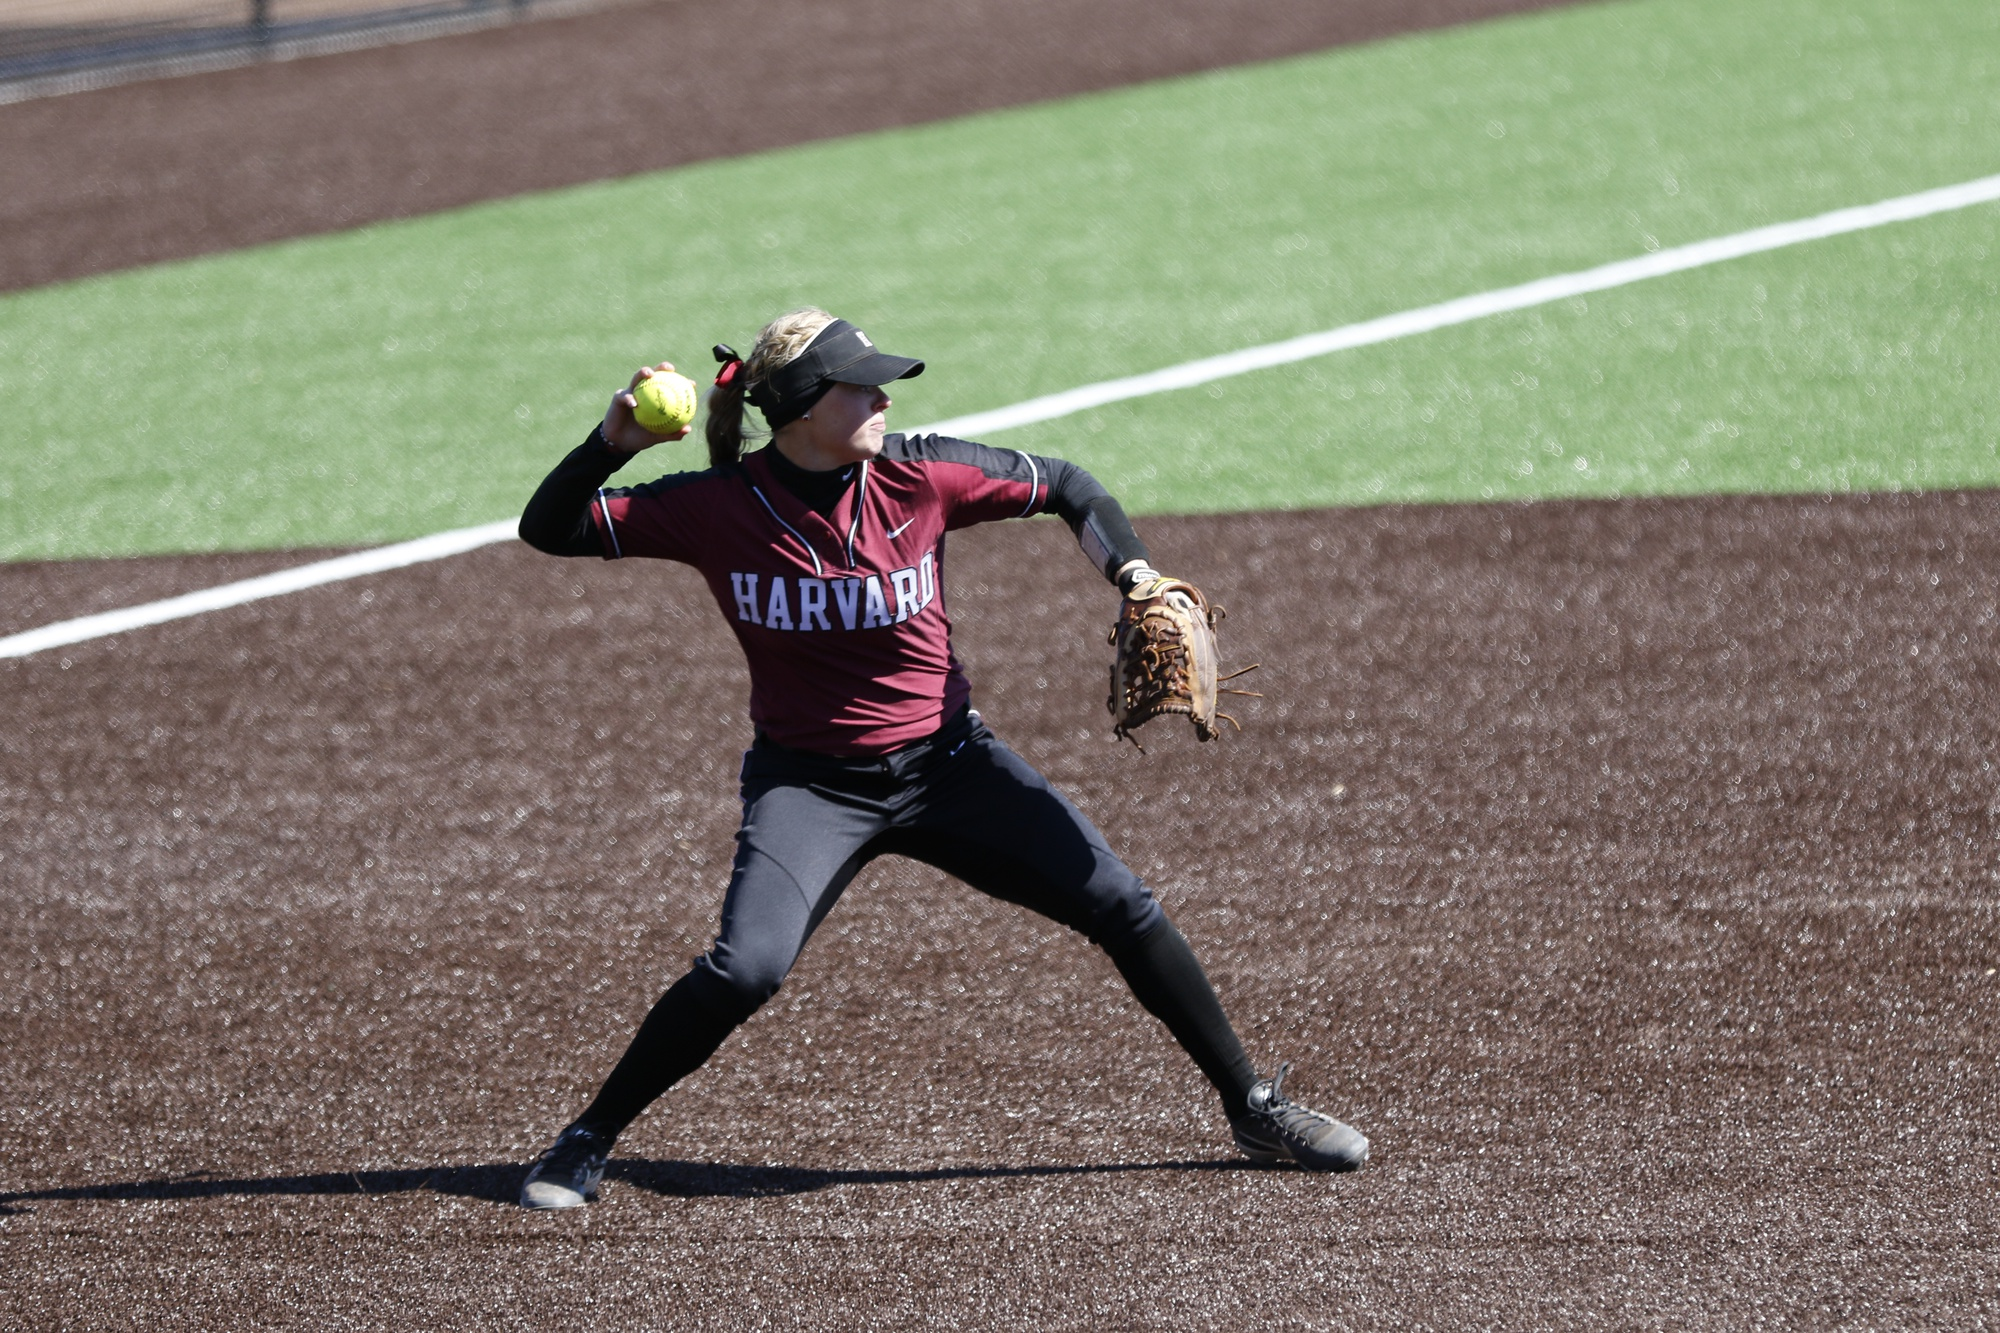 Senior INF Meagan Lantz launches the ball against Yale in a game last season.